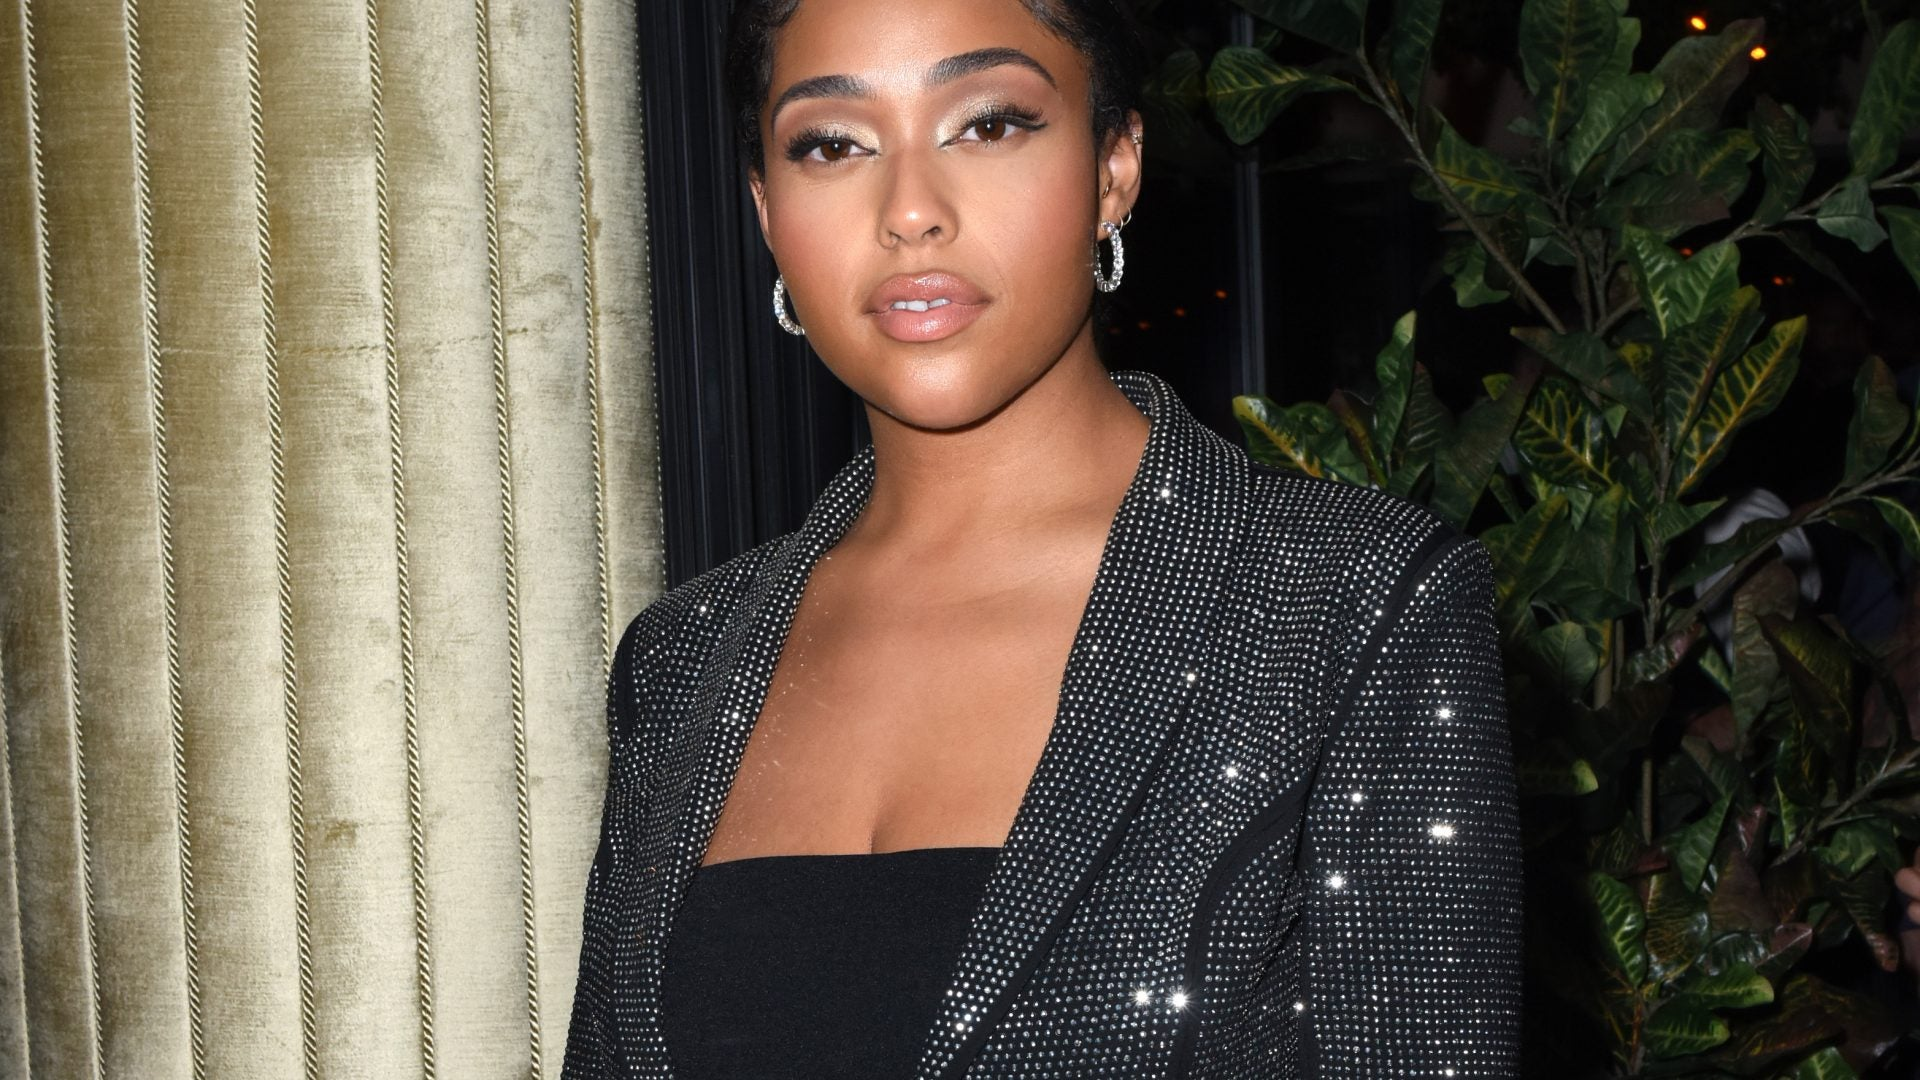 Jordyn Woods Breaks The Internet For Valentine's Day - Check Out The Post She Shared